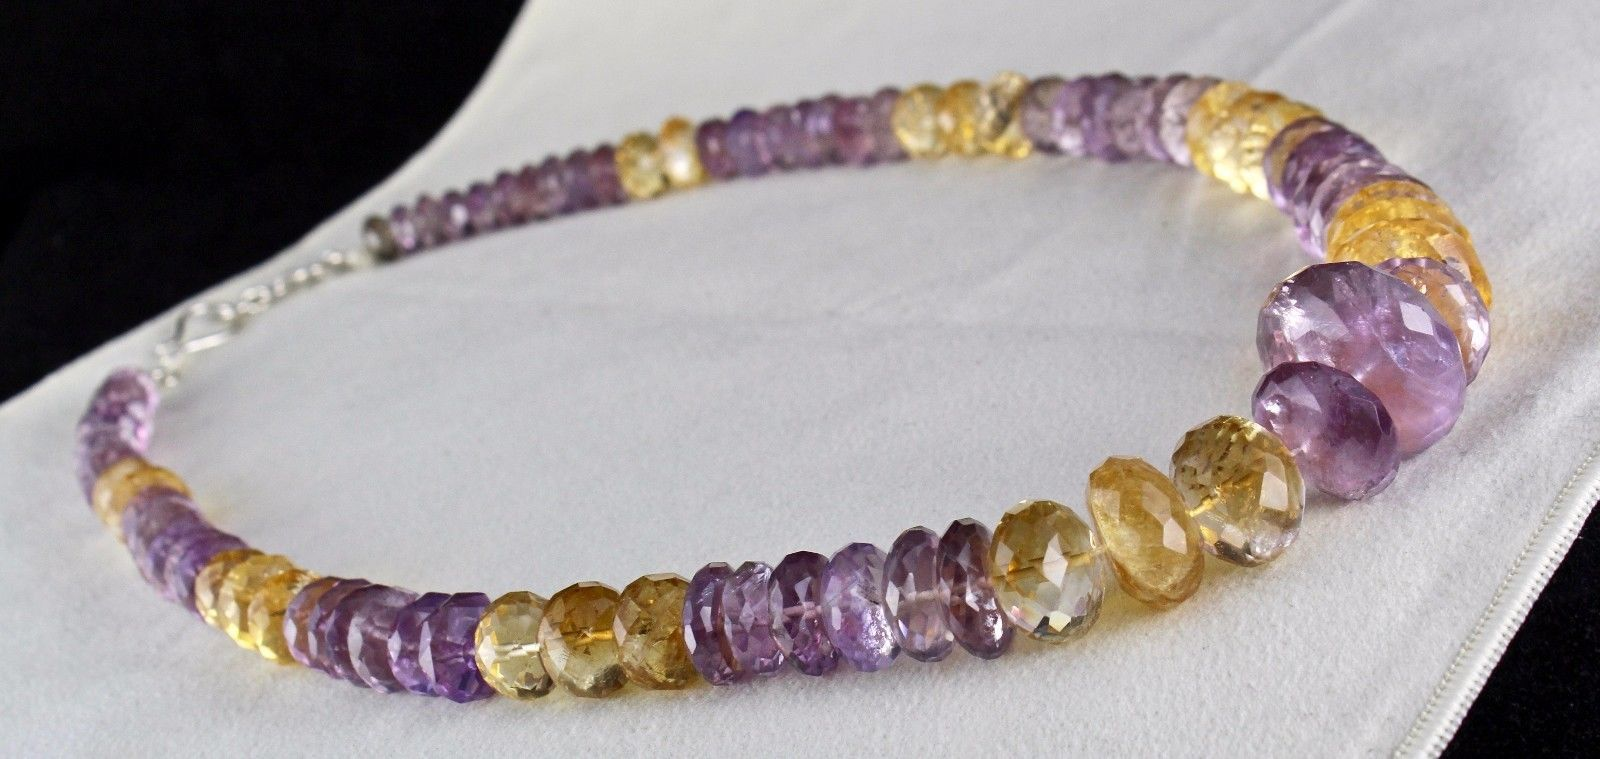 NATURAL CITRINE AMETHYST BEADS FACETED 1 LINE 875 CARATS GEMSTONE NECKLACE image 6